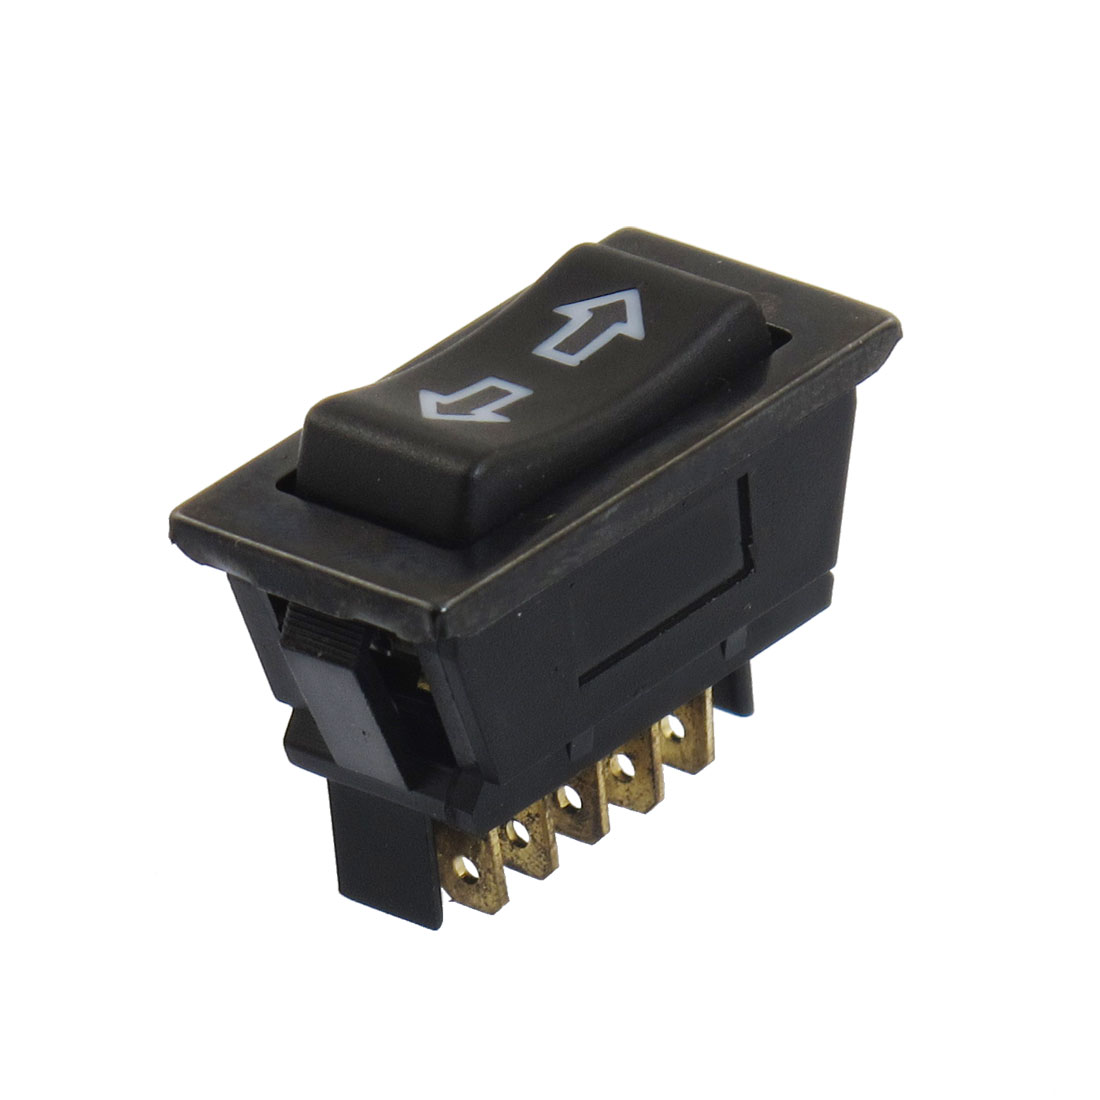 DC 12V 20A Momentary 5 Pins DPDT Automobile Car Power Window Switch